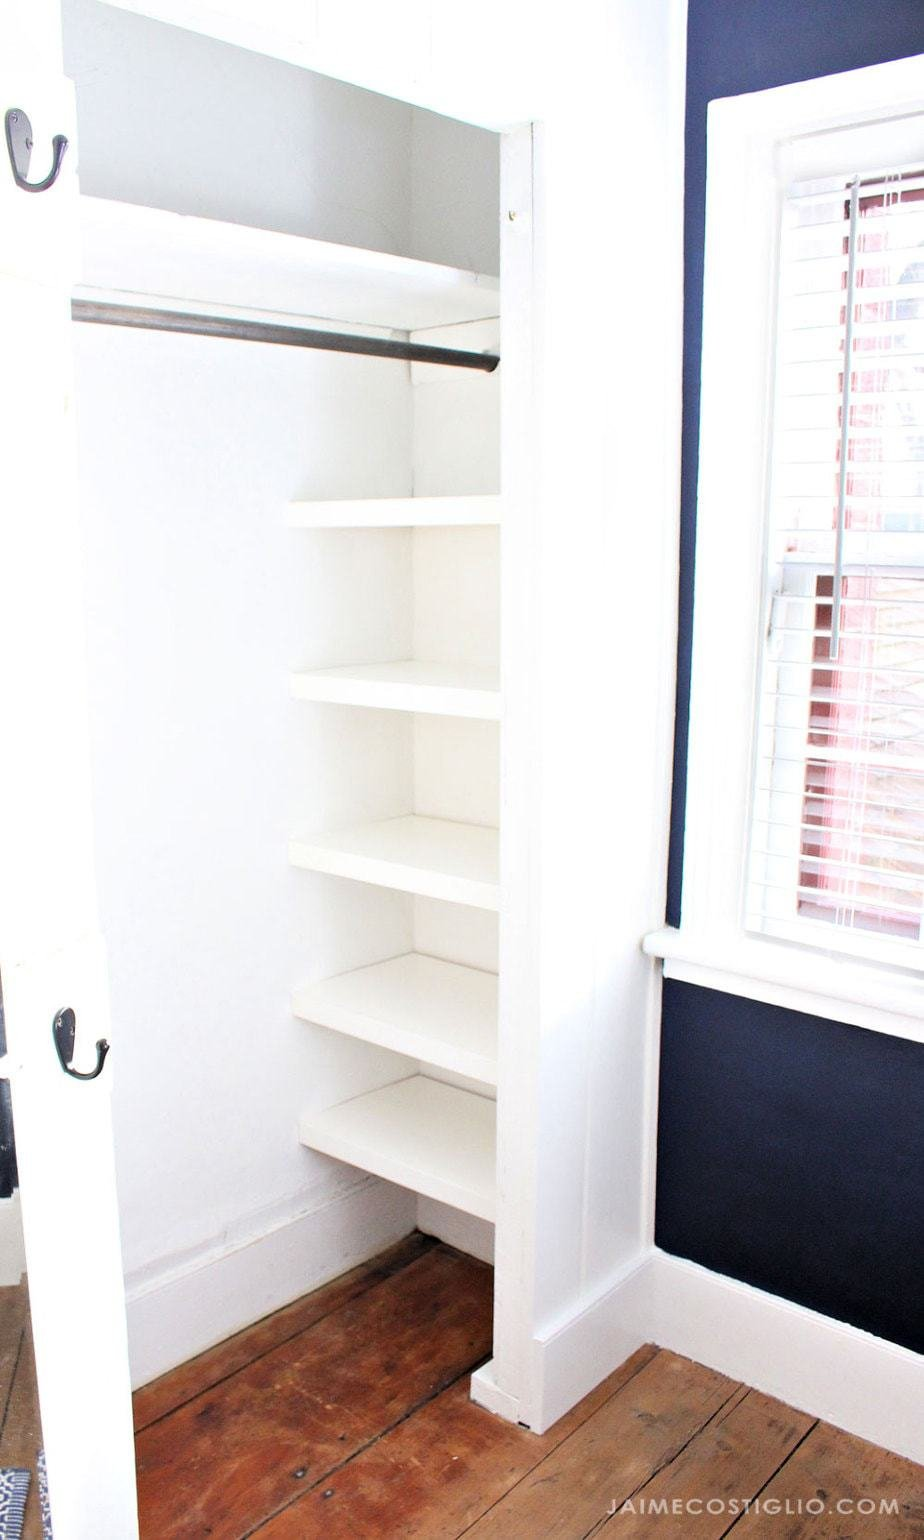 7. Try completing this EASY CLOSET SHELVES Ideas by simphome.com